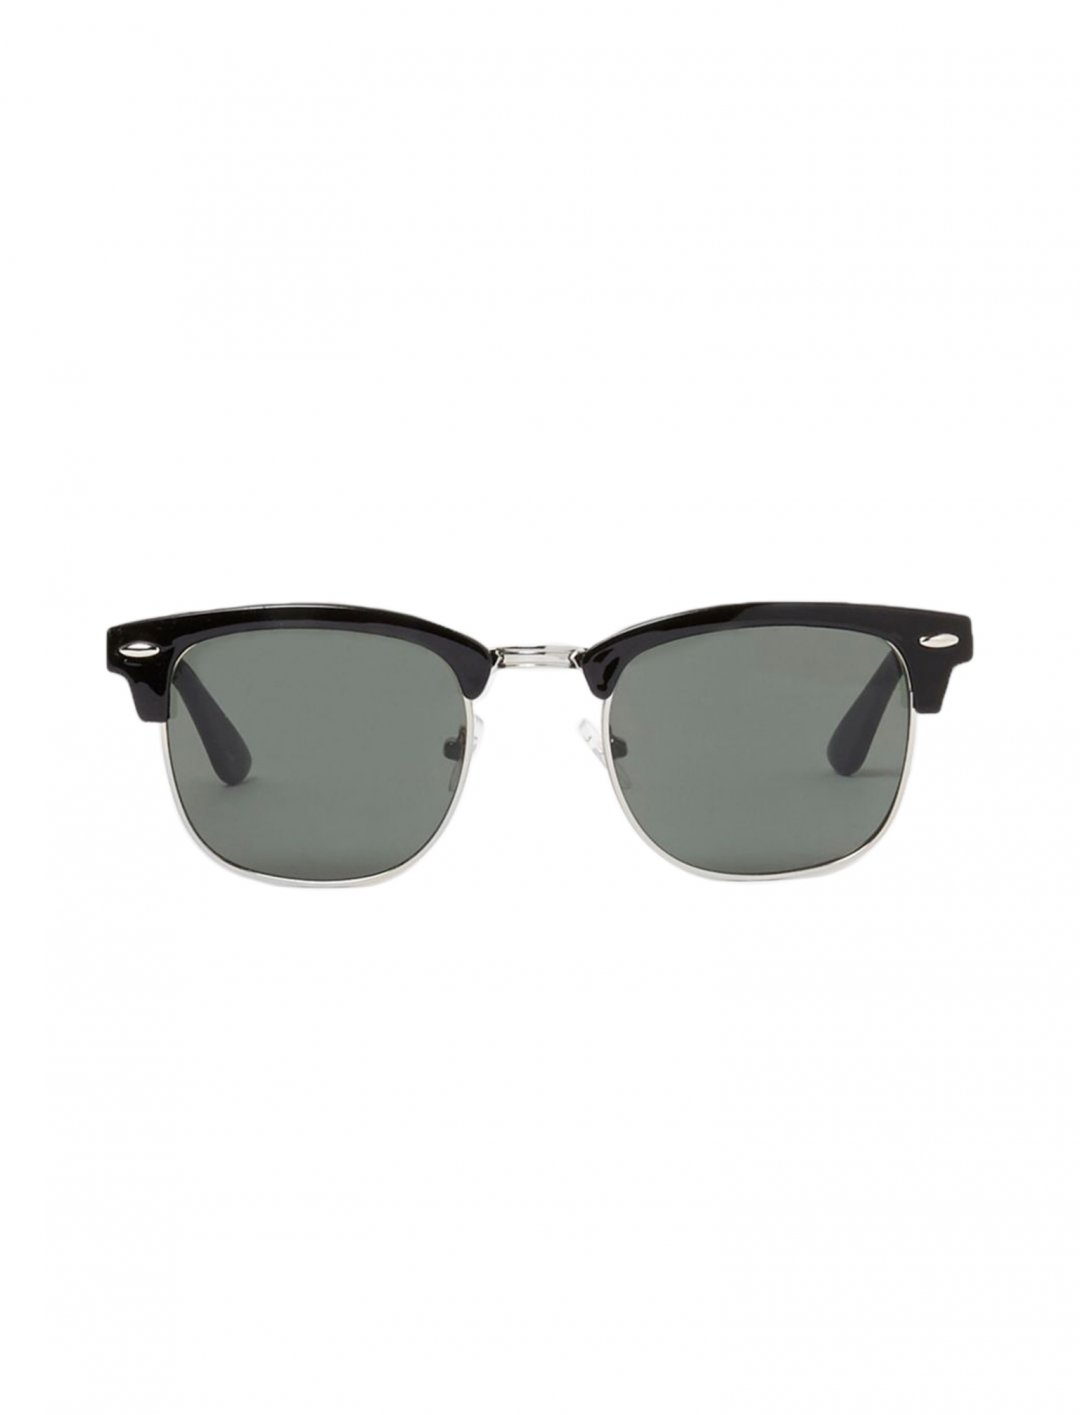 "Retro Sunglasses {""id"":16,""product_section_id"":1,""name"":""Accessories"",""order"":15} River Island"